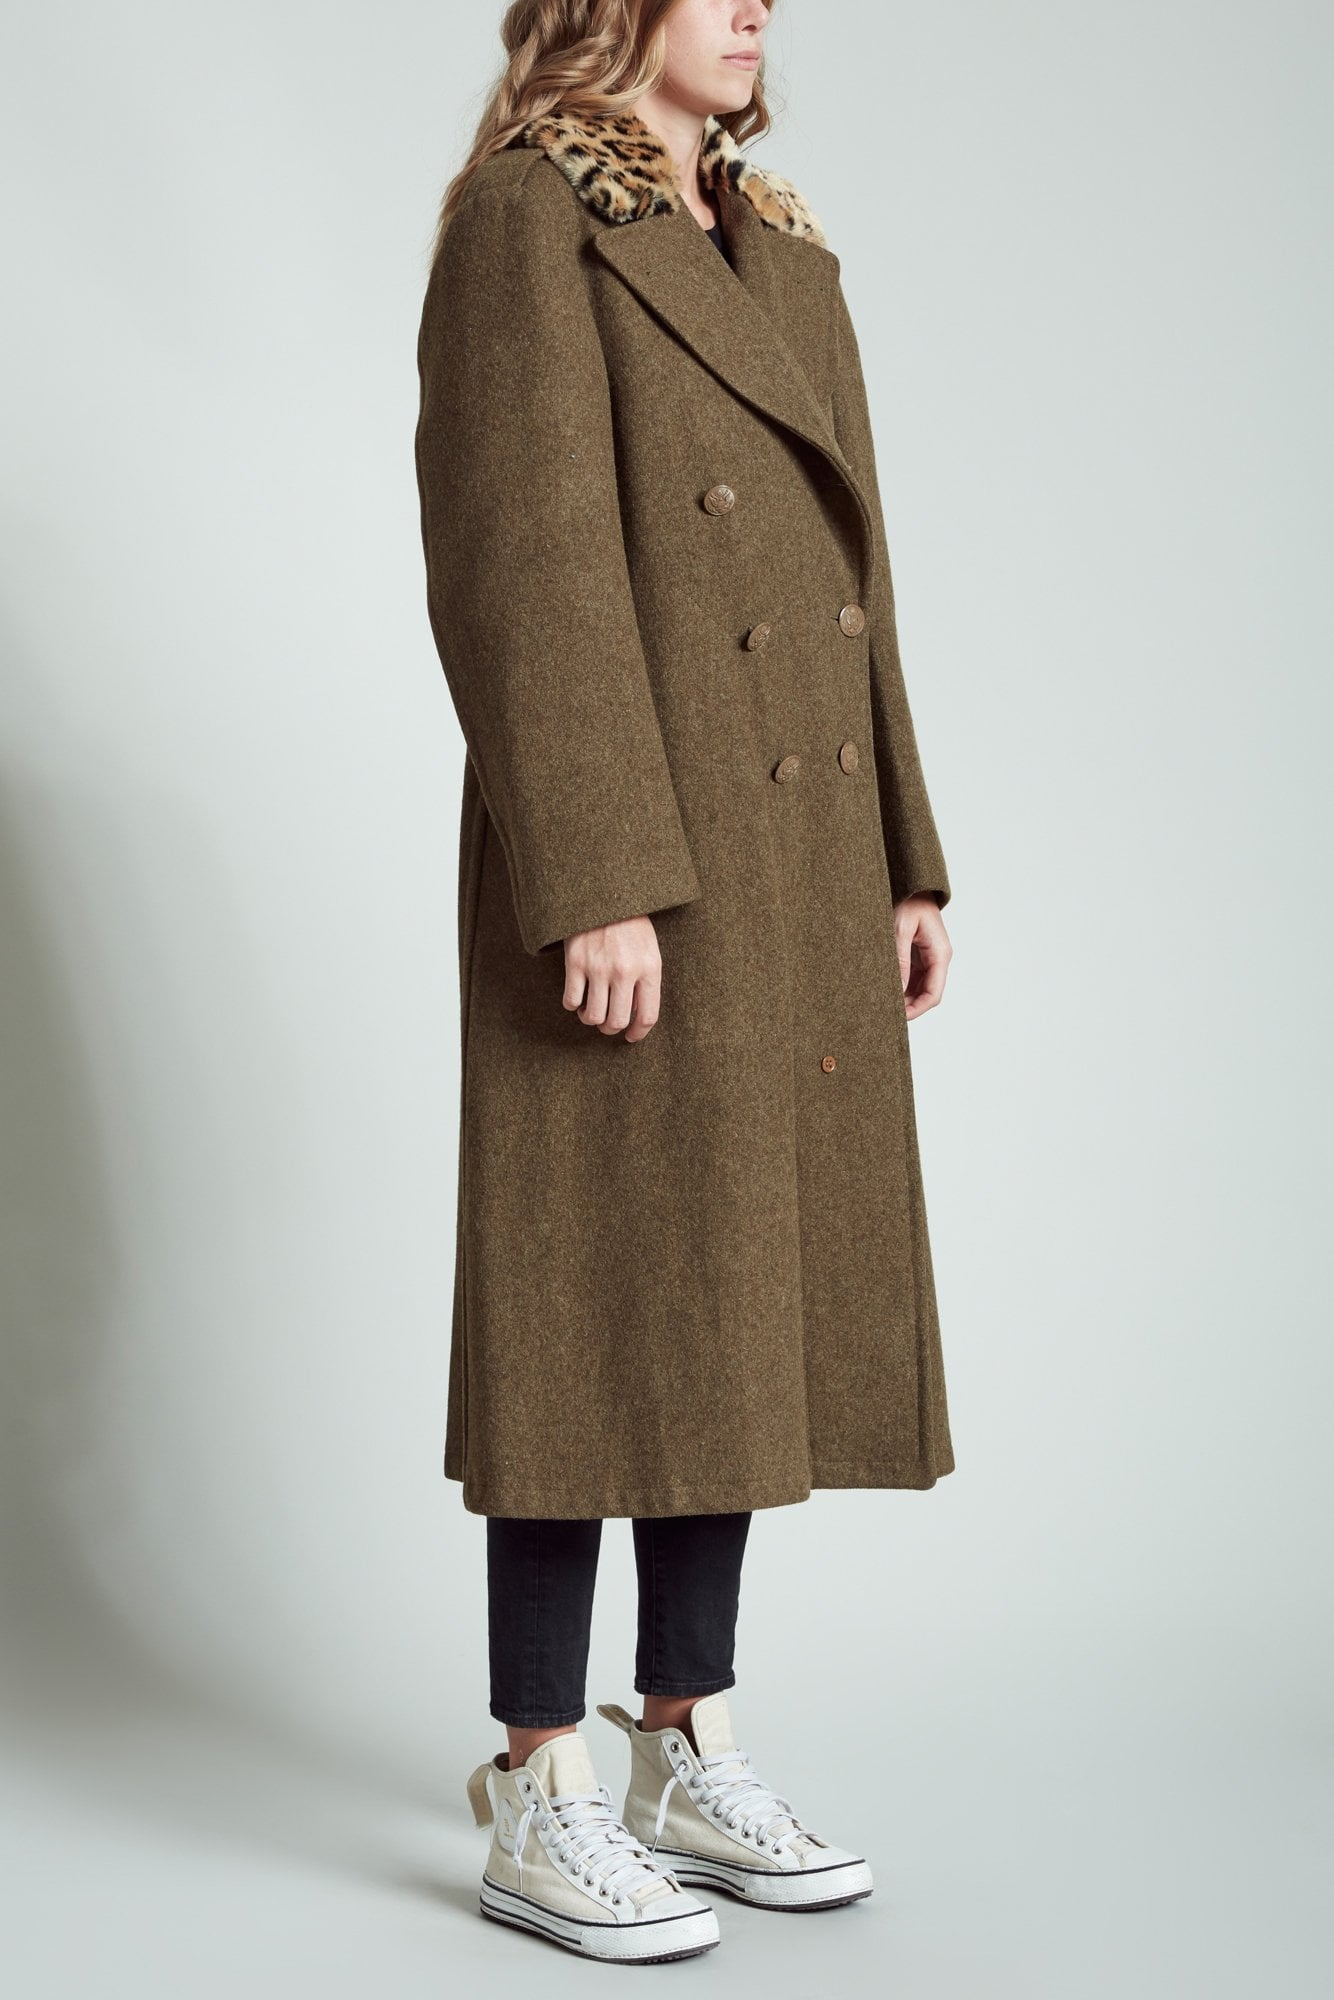 Refurbished Army Coat with Leopard Collar